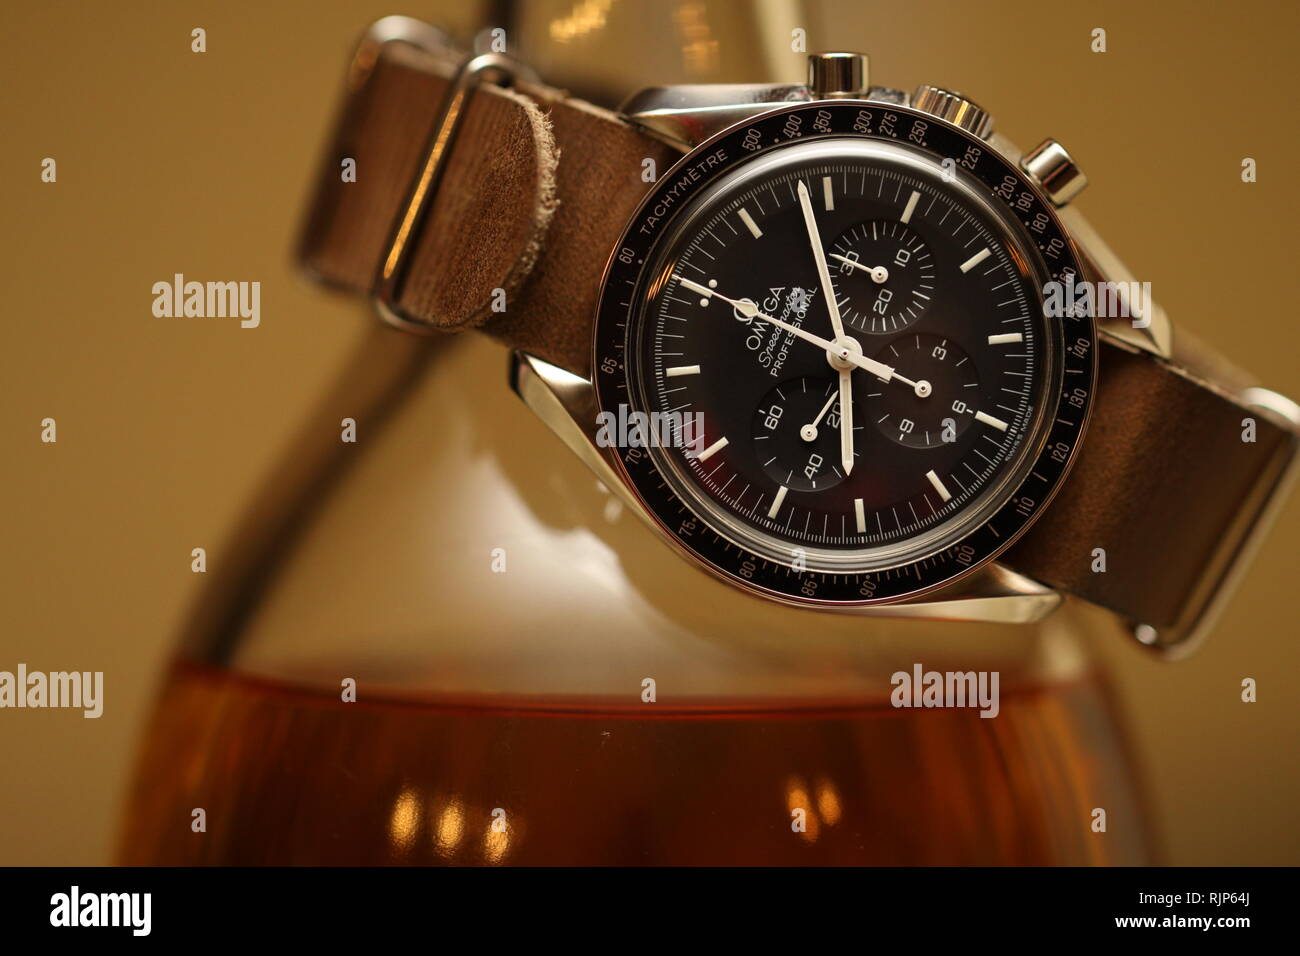 Omega Speedmaster watch on leather nato strap wrapped around bottle of single malt scotch on brown background - Stock Image